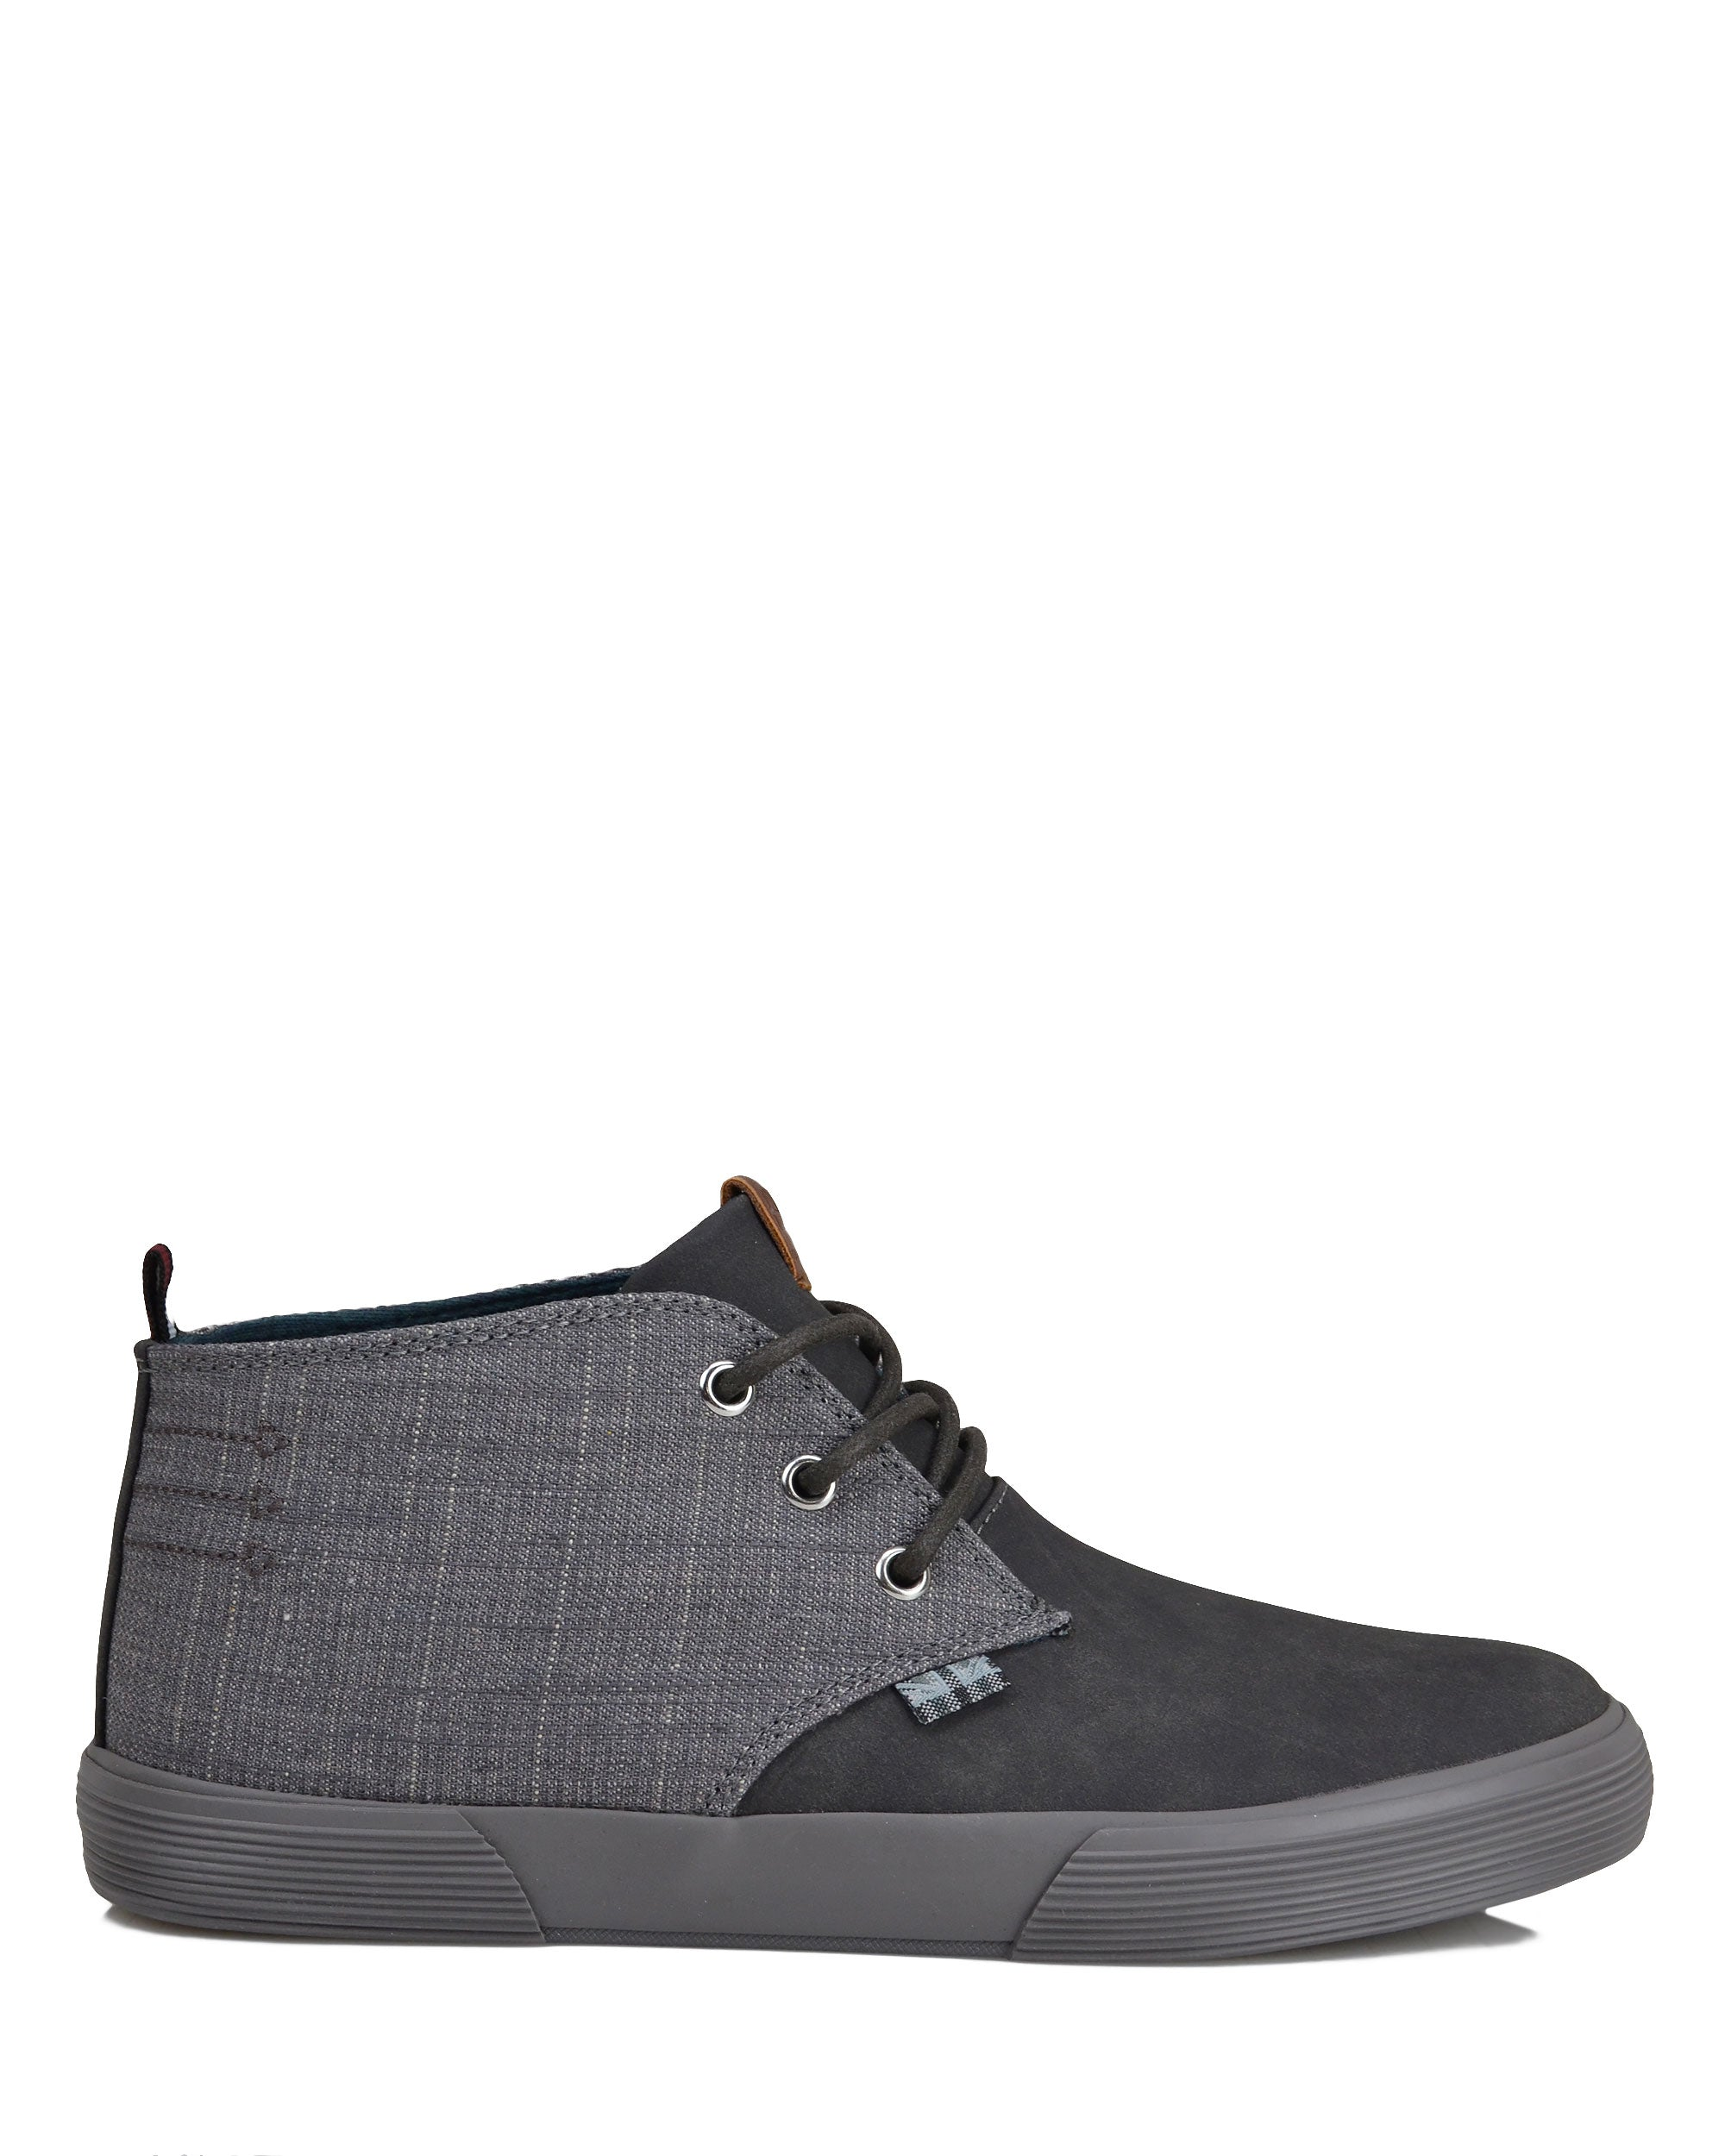 Bradford Denim/Suede Chukka - Dark Grey